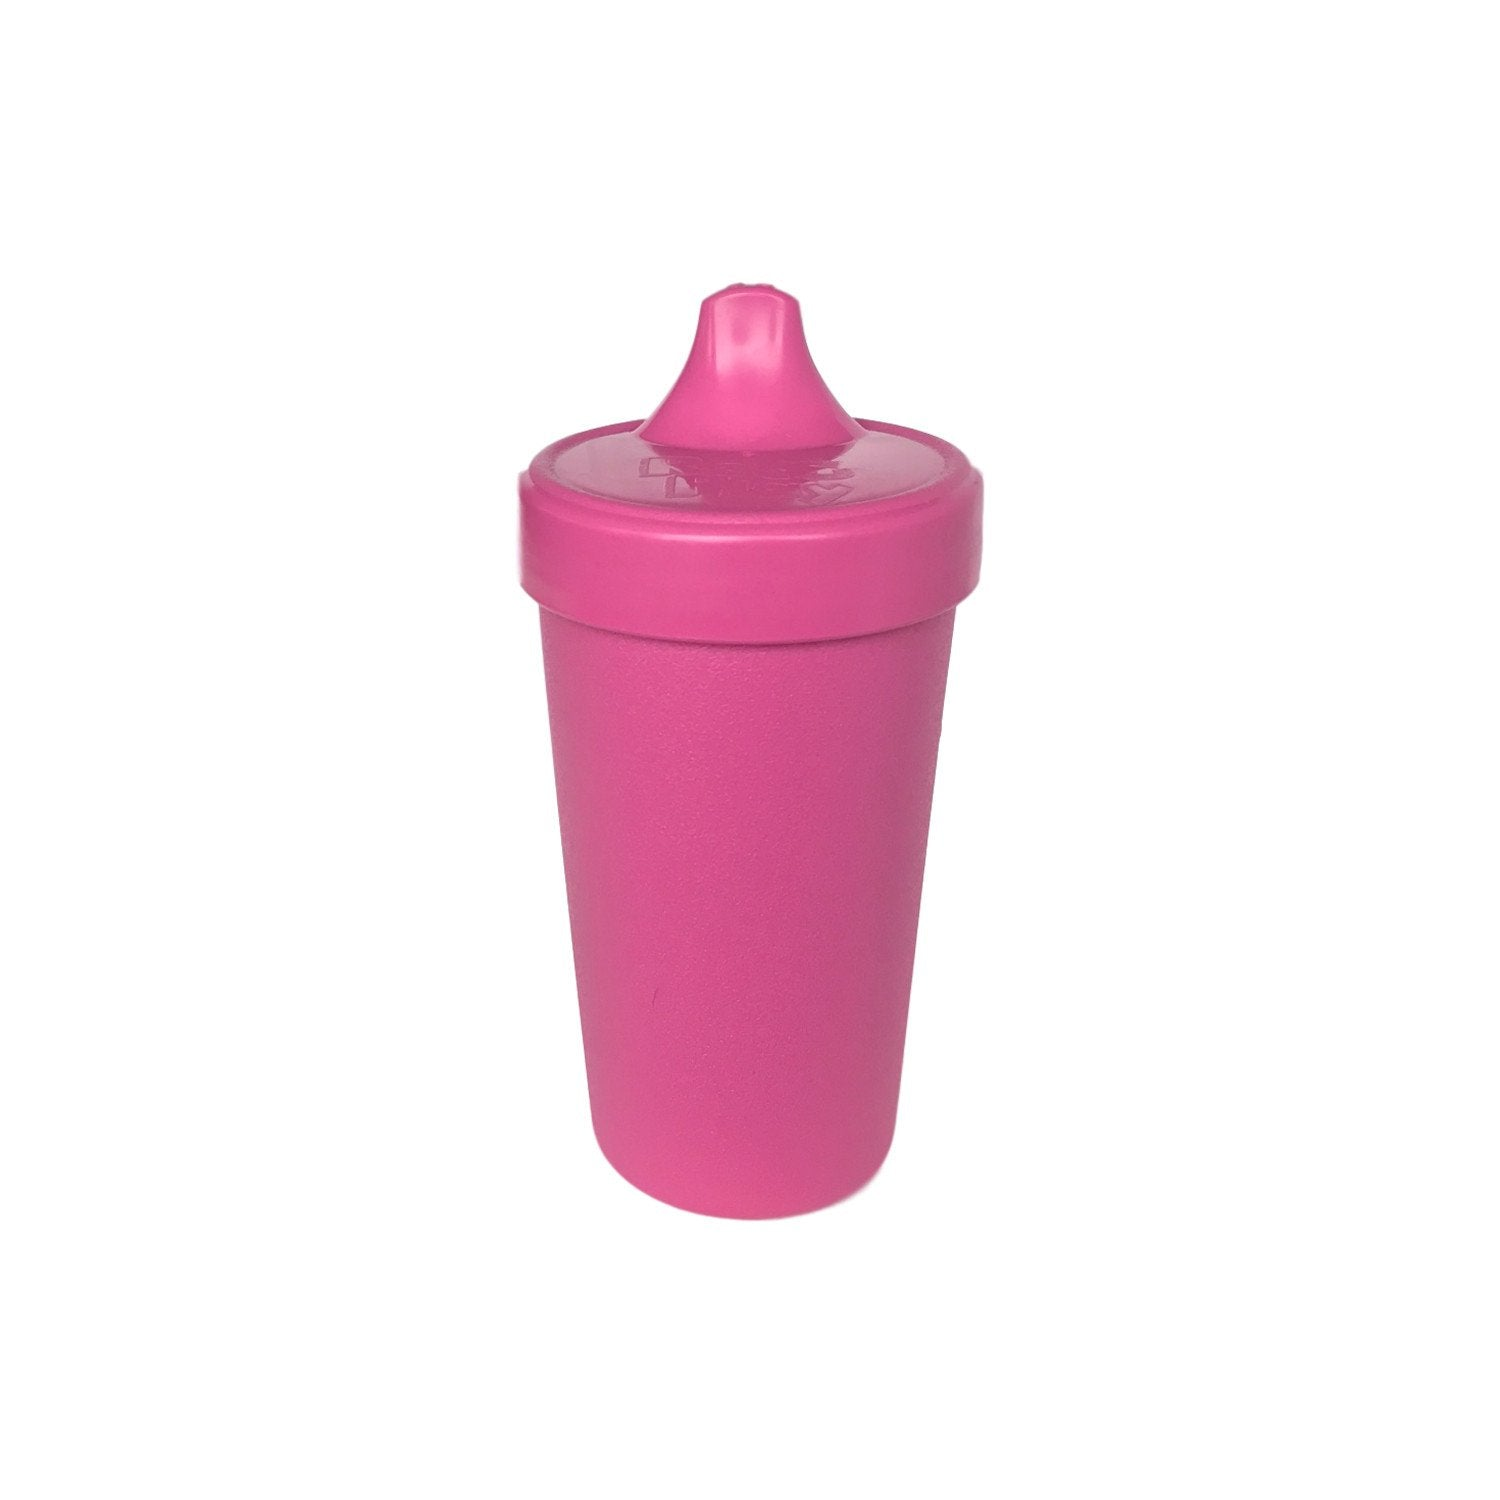 Replay Sippy Cup Replay Sippy Cups Bright Pink at Little Earth Nest Eco Shop